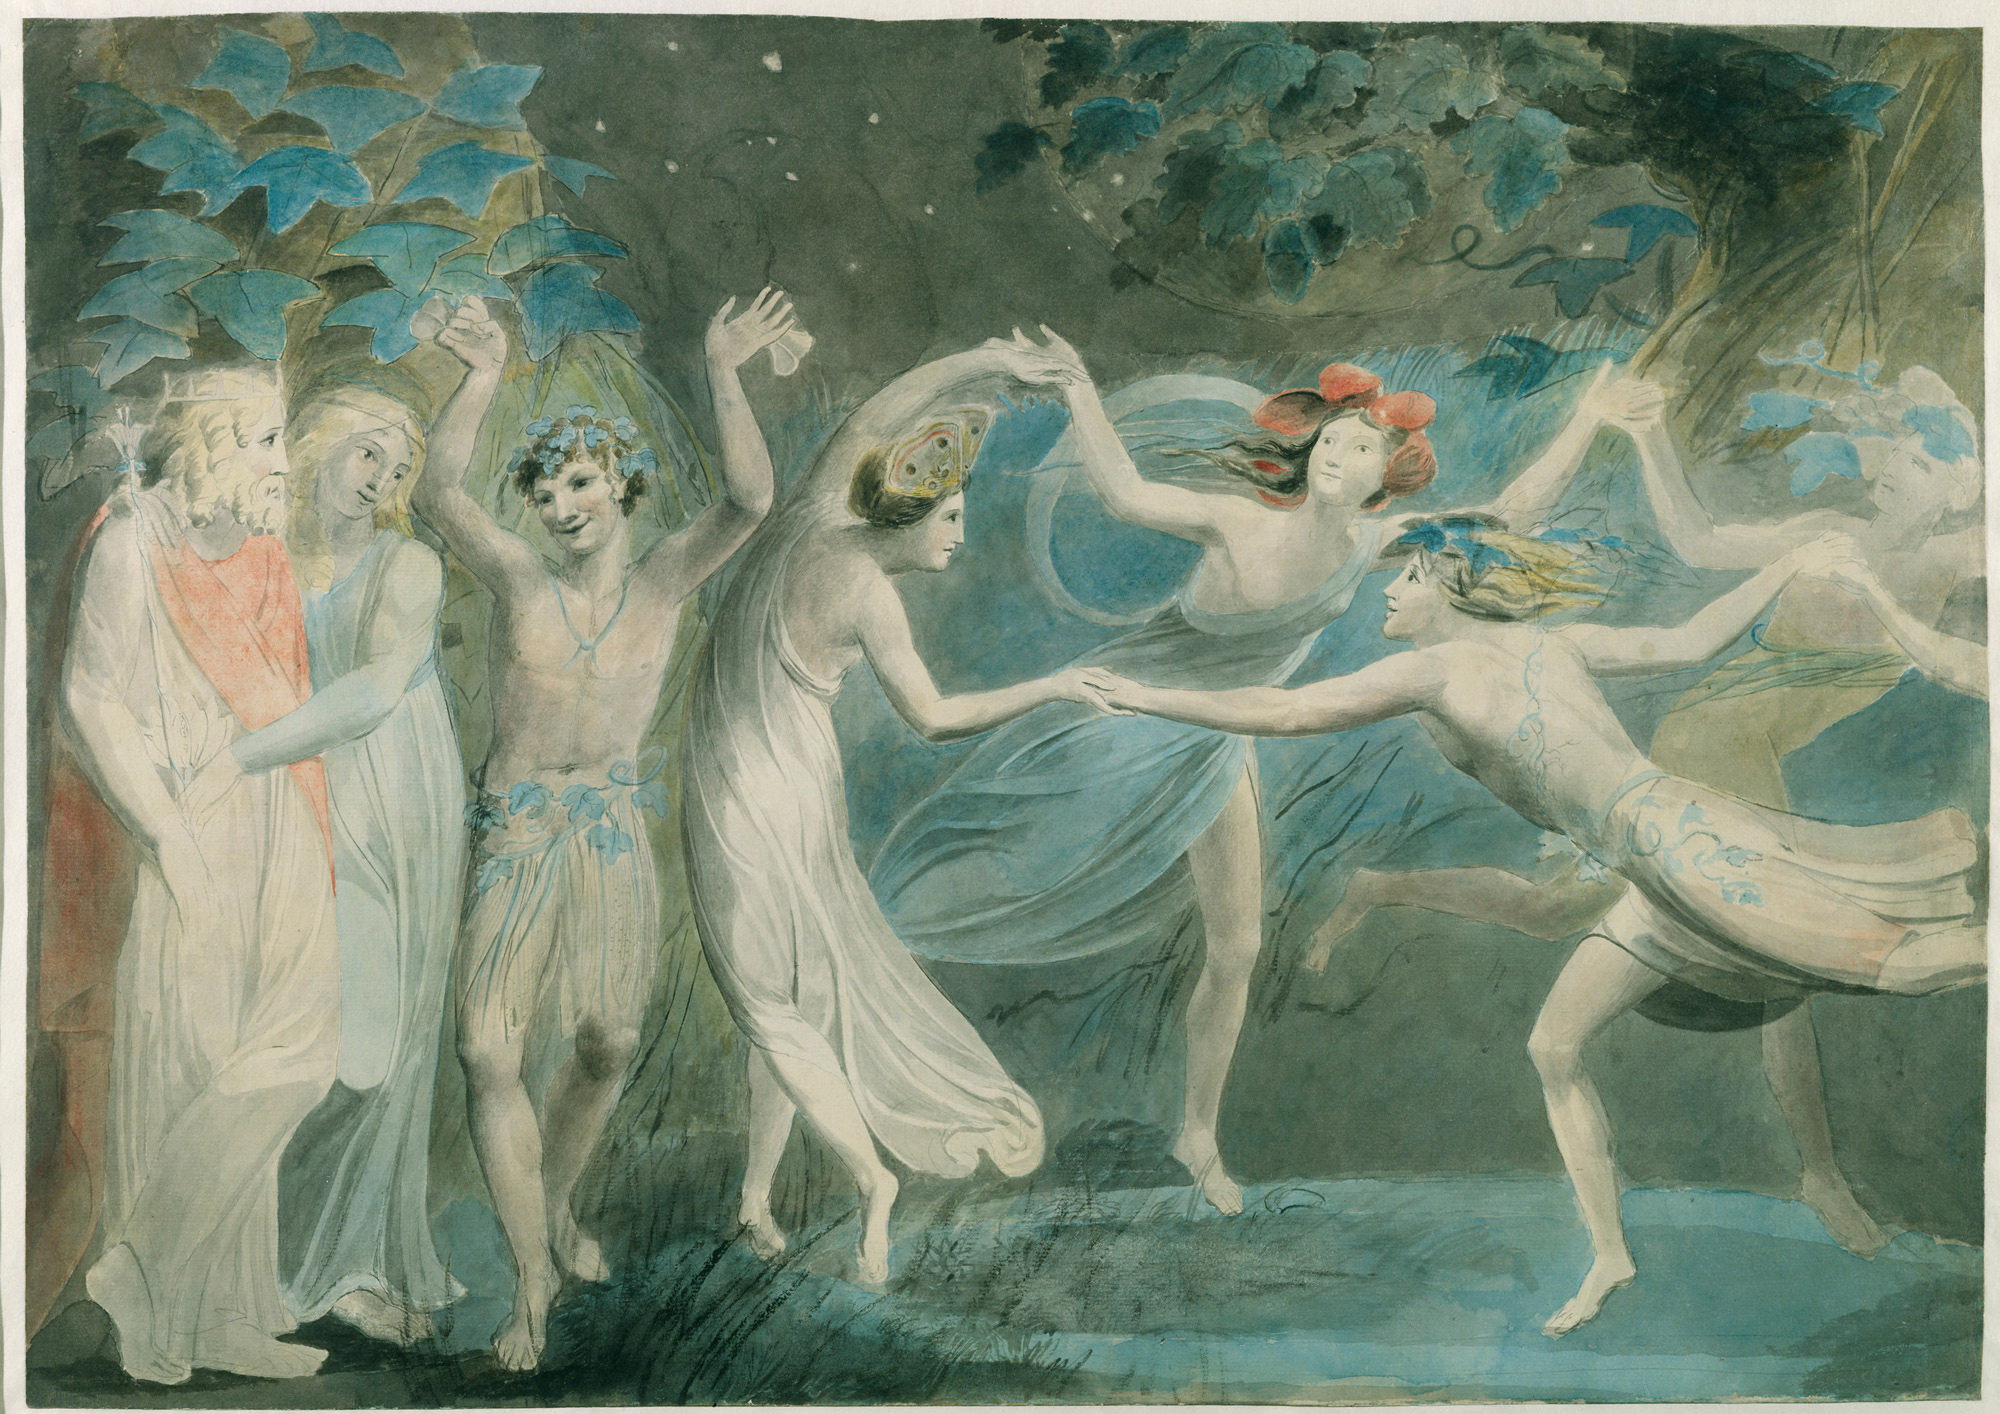 William Blake painting of fairies in A Midsummer Night's Dream